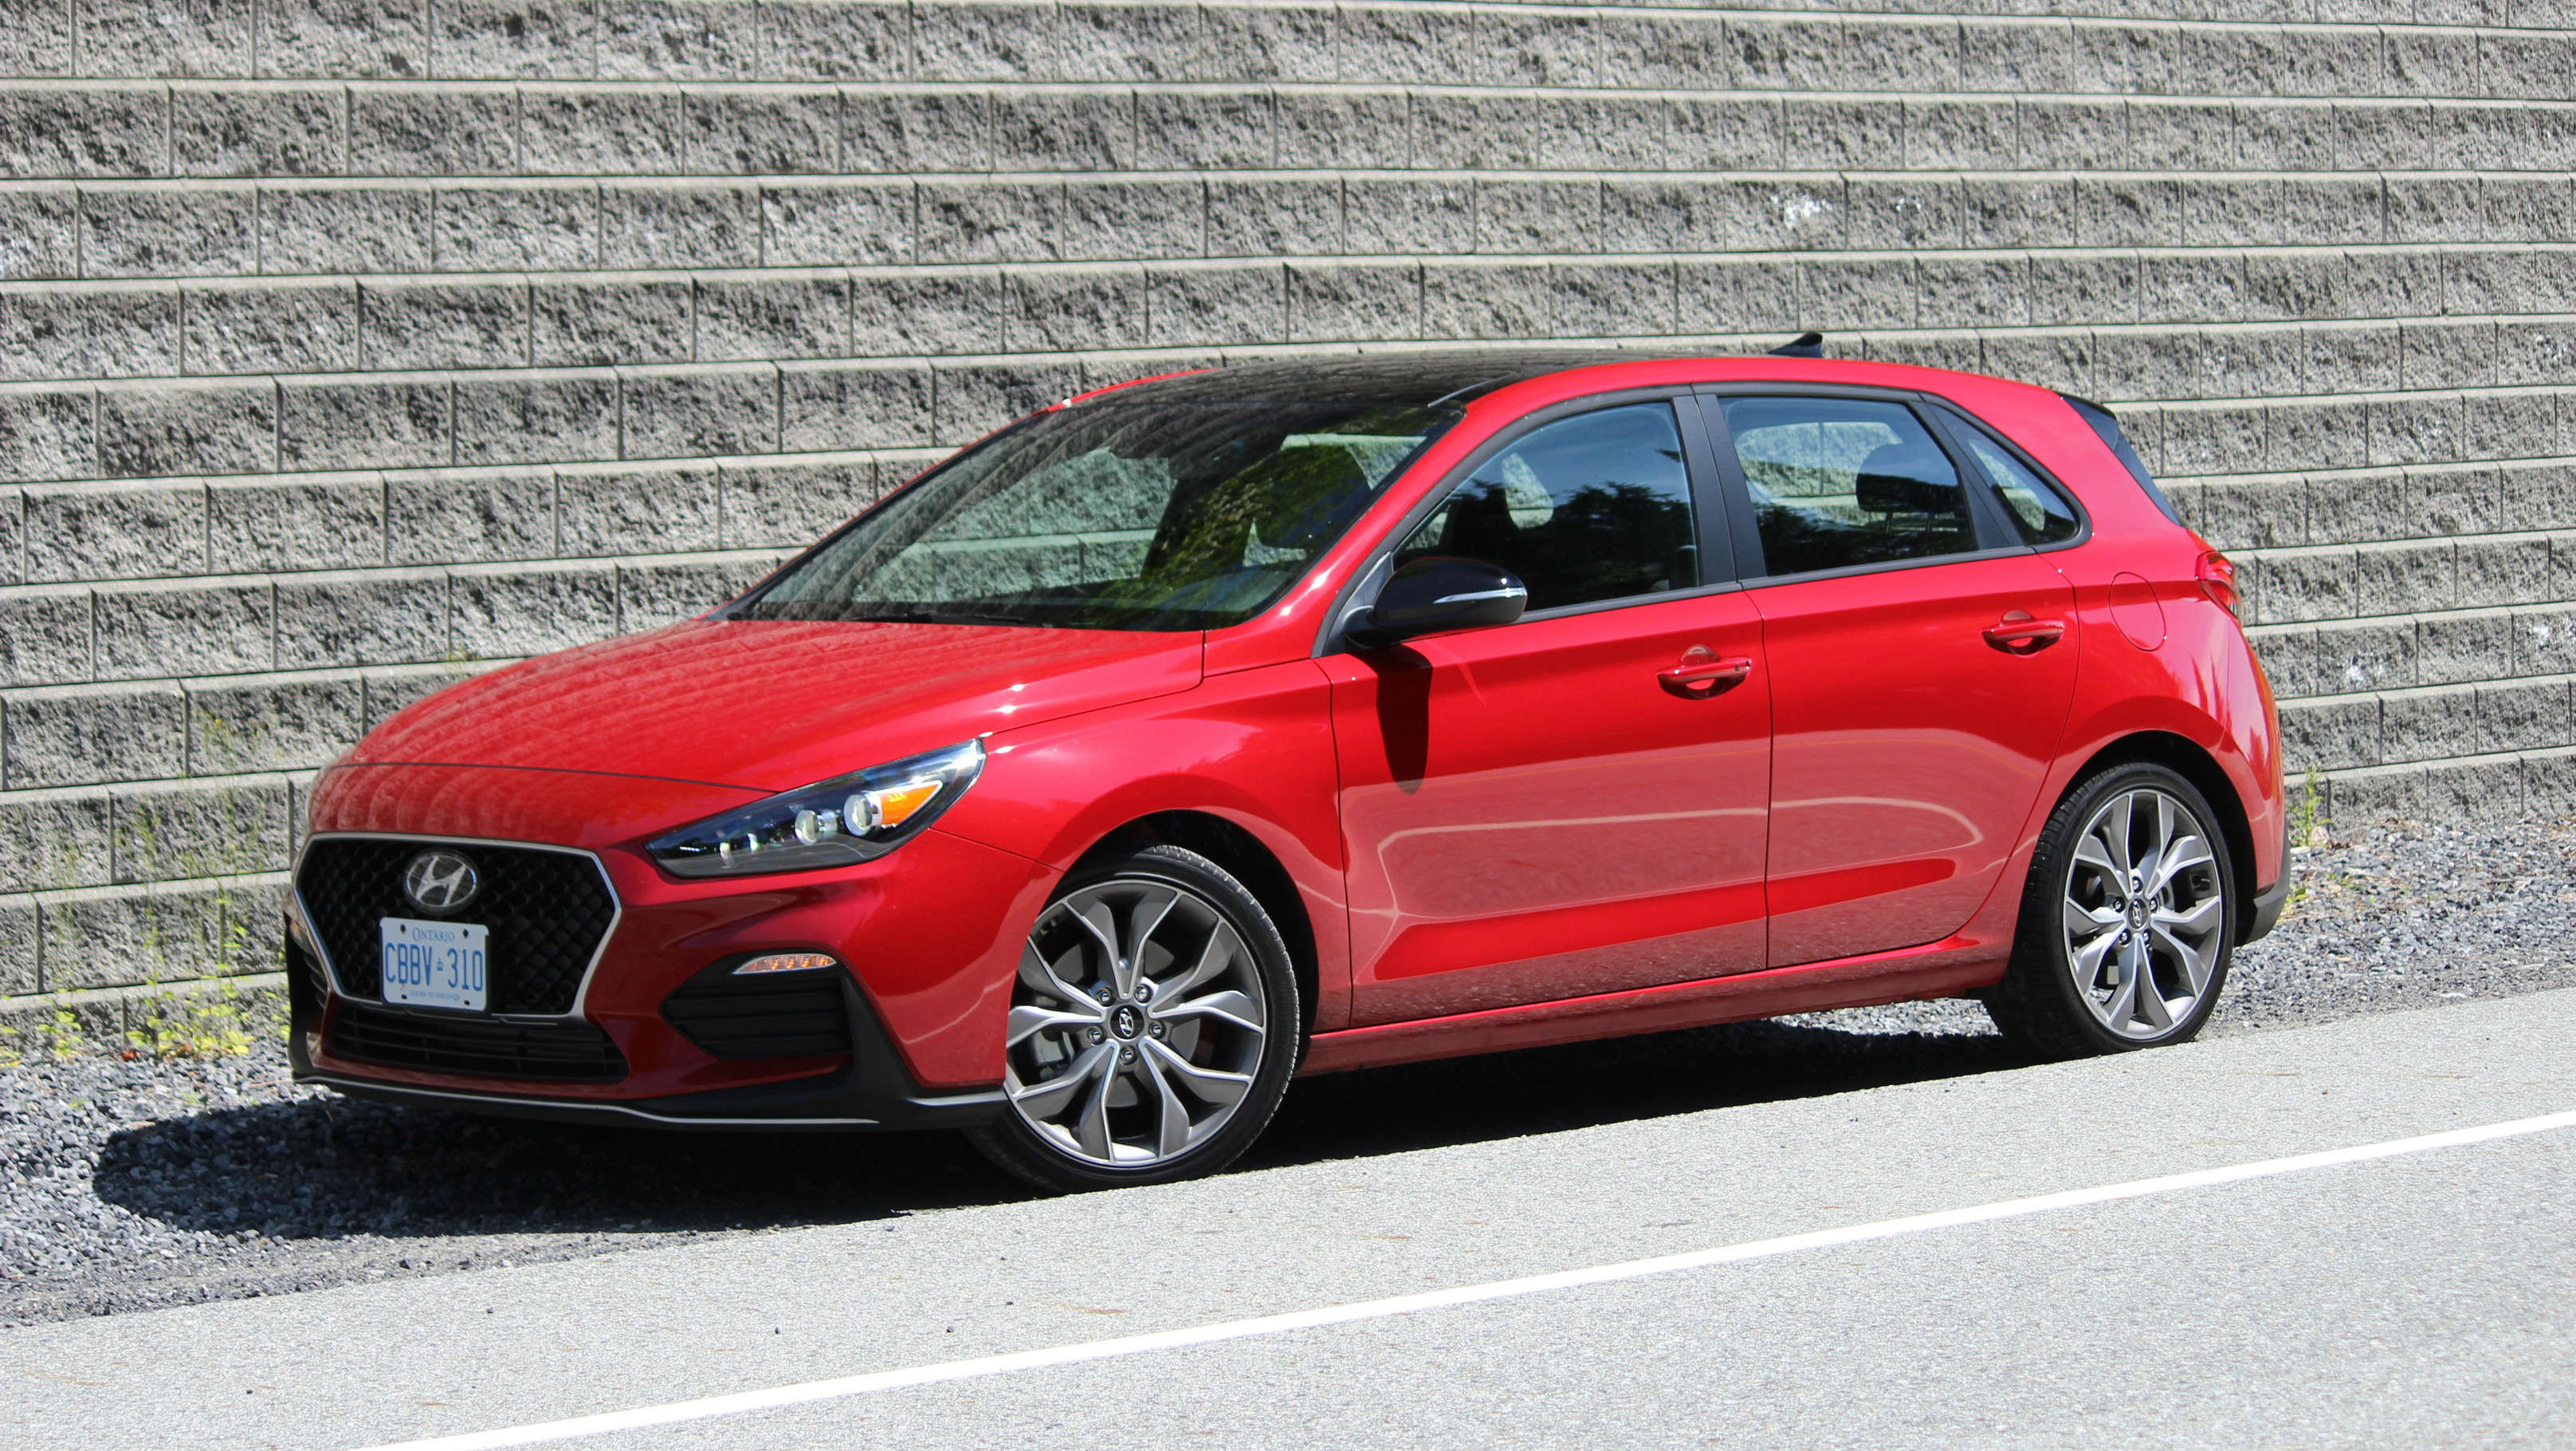 Review: 2019 Hyundai Elantra GT N Line - WHEELS.ca